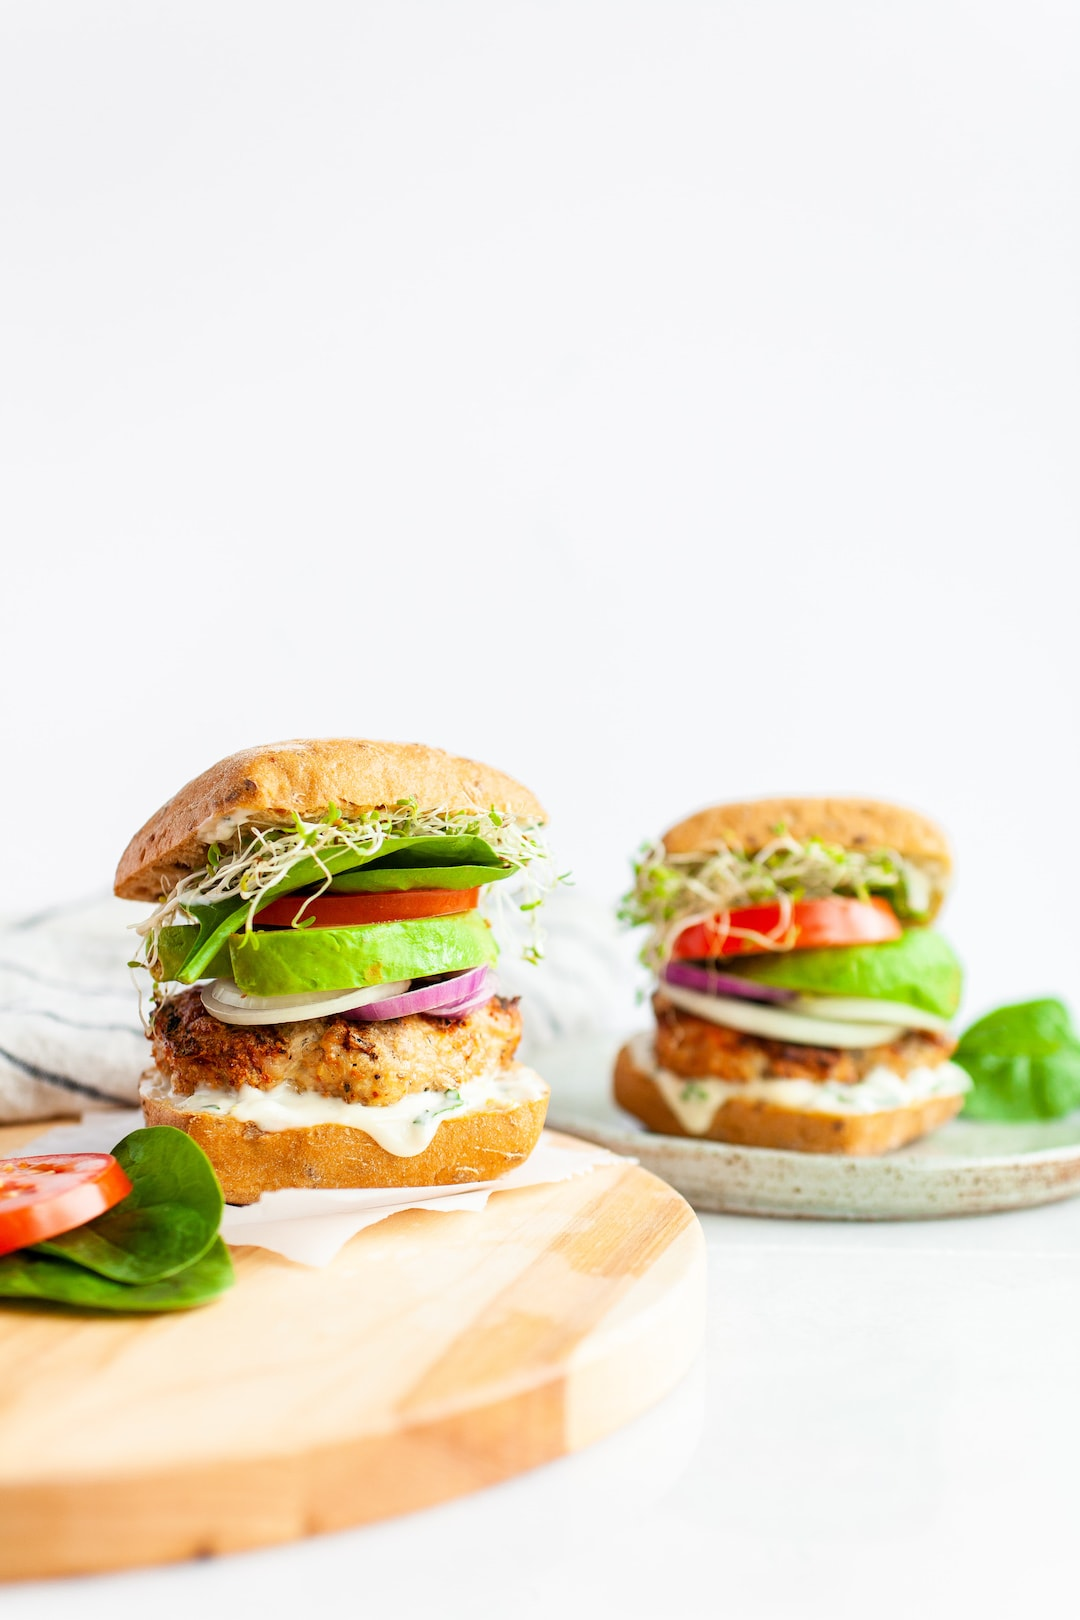 Gluten Free Best Healthy Turkey Burger Recipe with Avocado